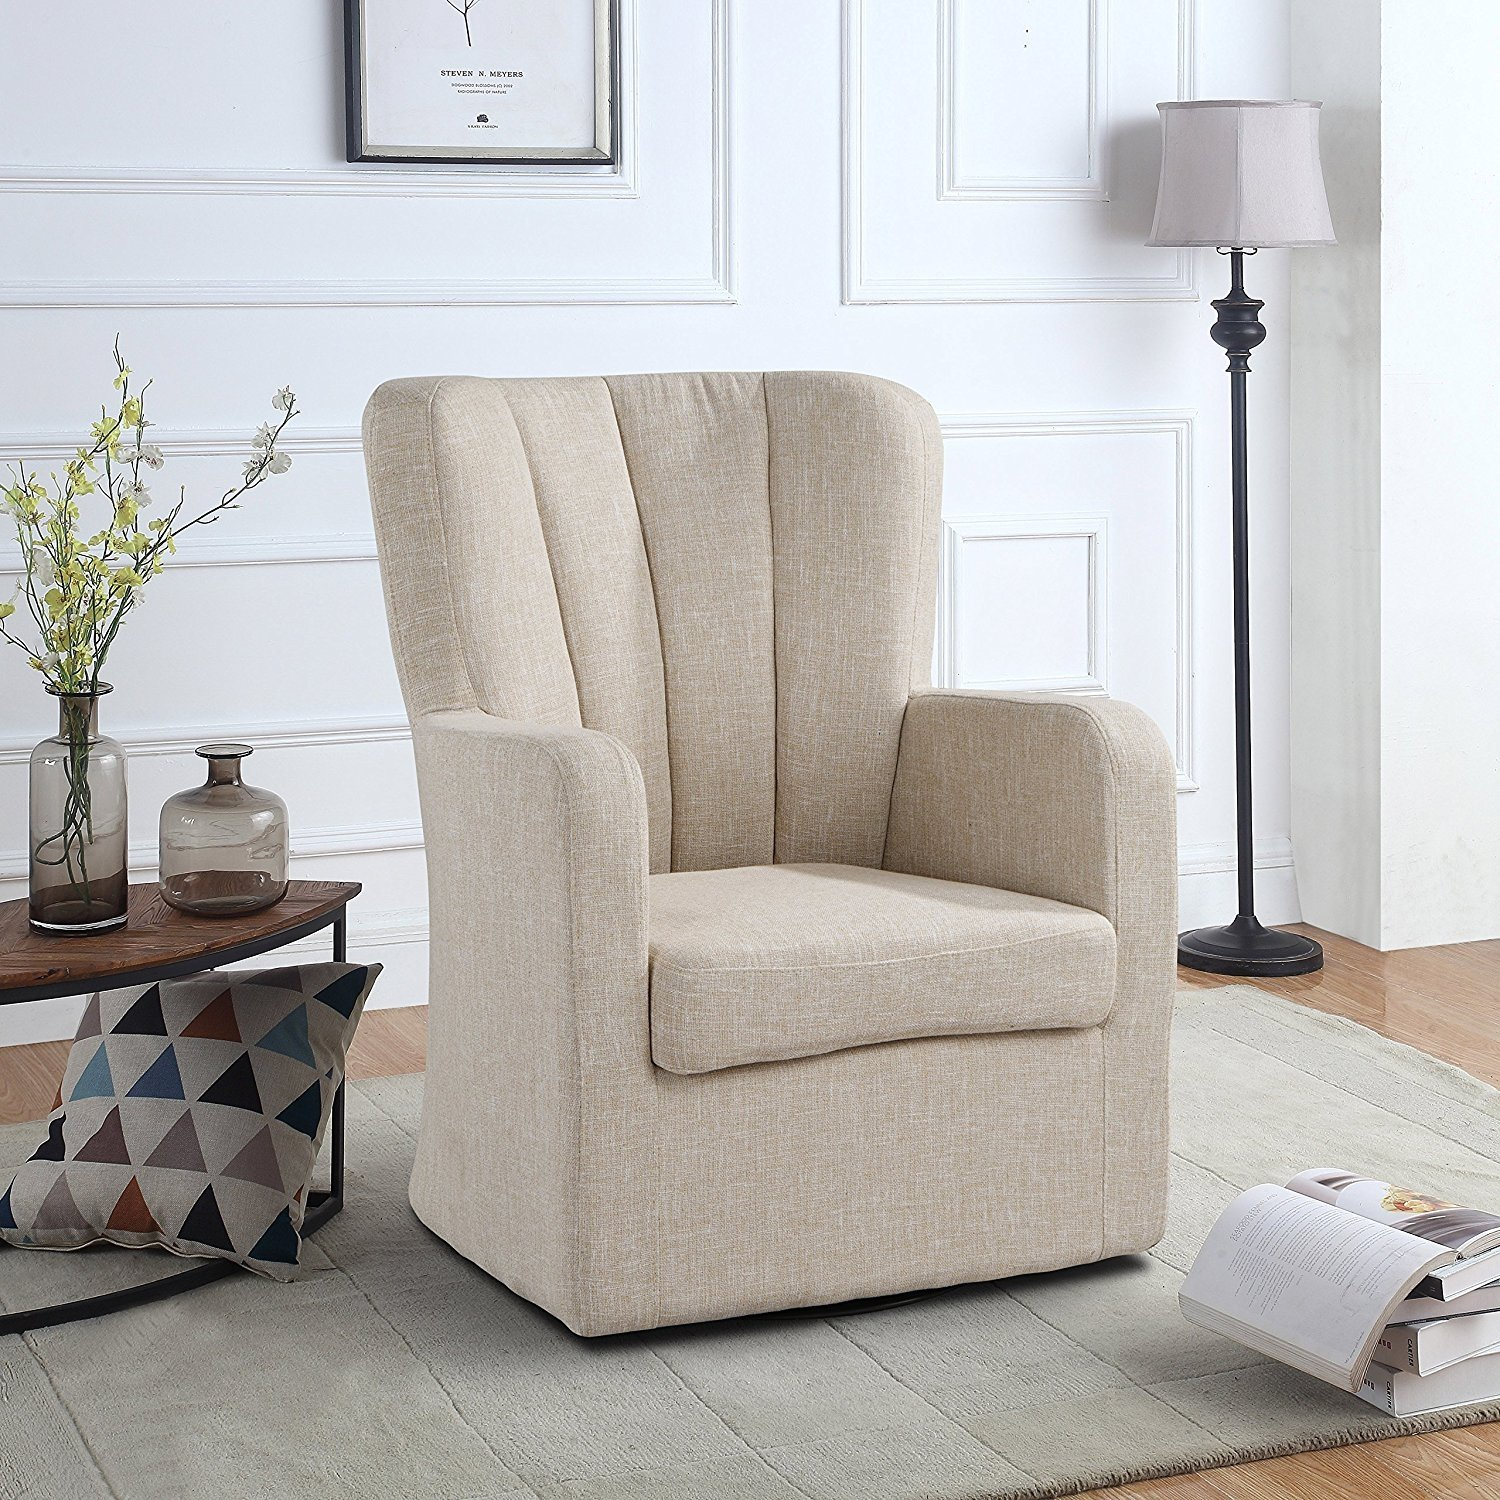 Picture of: Modern Swivel Armchair Rotating Accent Chair For Living Room With Pleated Back Beige Walmart Com Walmart Com